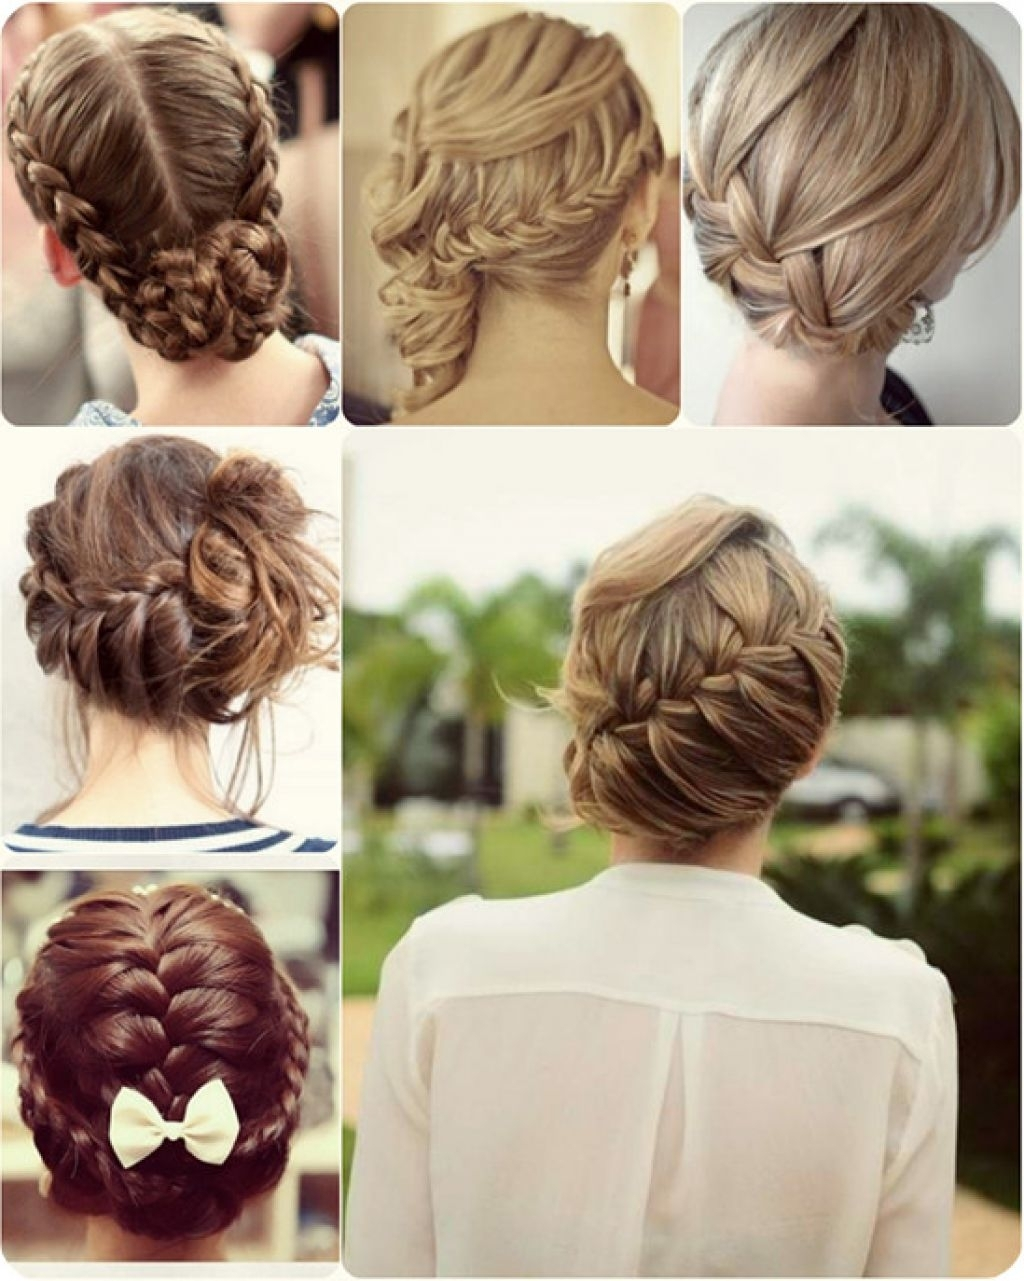 Cute Updo Hairstyles For Work Simple Updos For Long Hair For Work In Cute Updos For Long Hair (View 5 of 15)